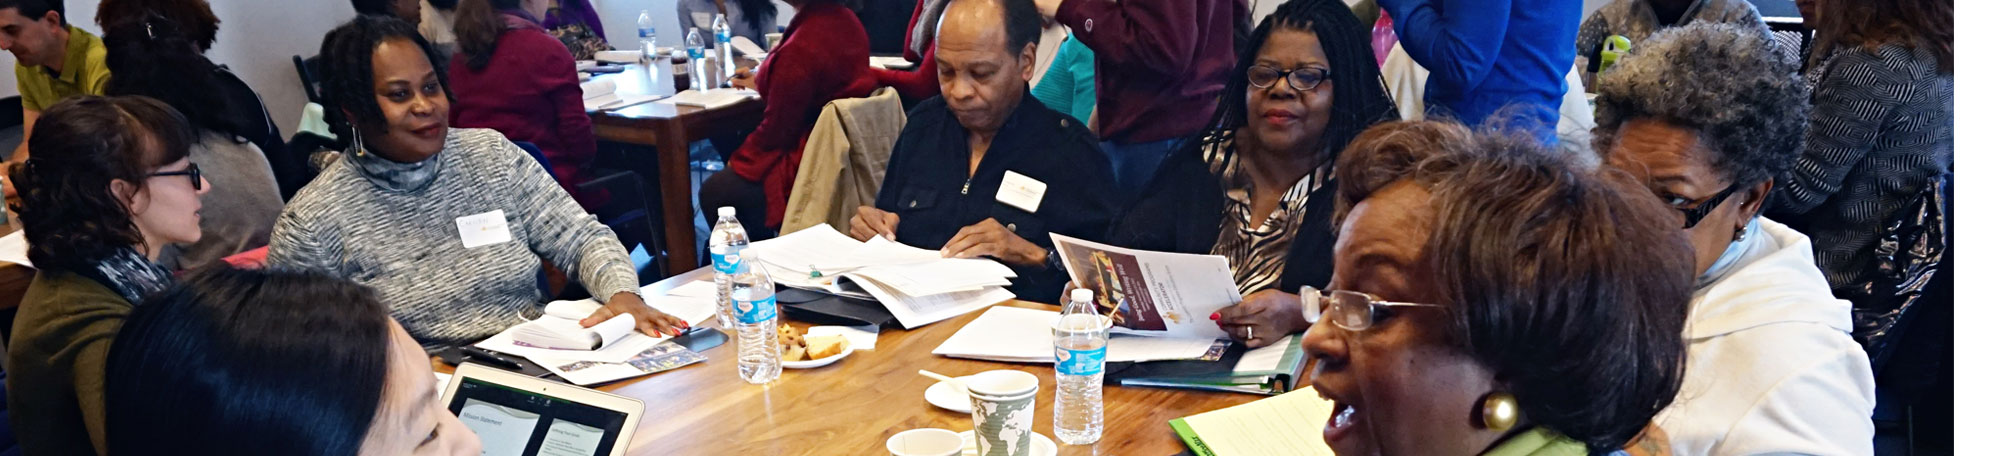 Participants at the Doing Good, Writing Well workshop